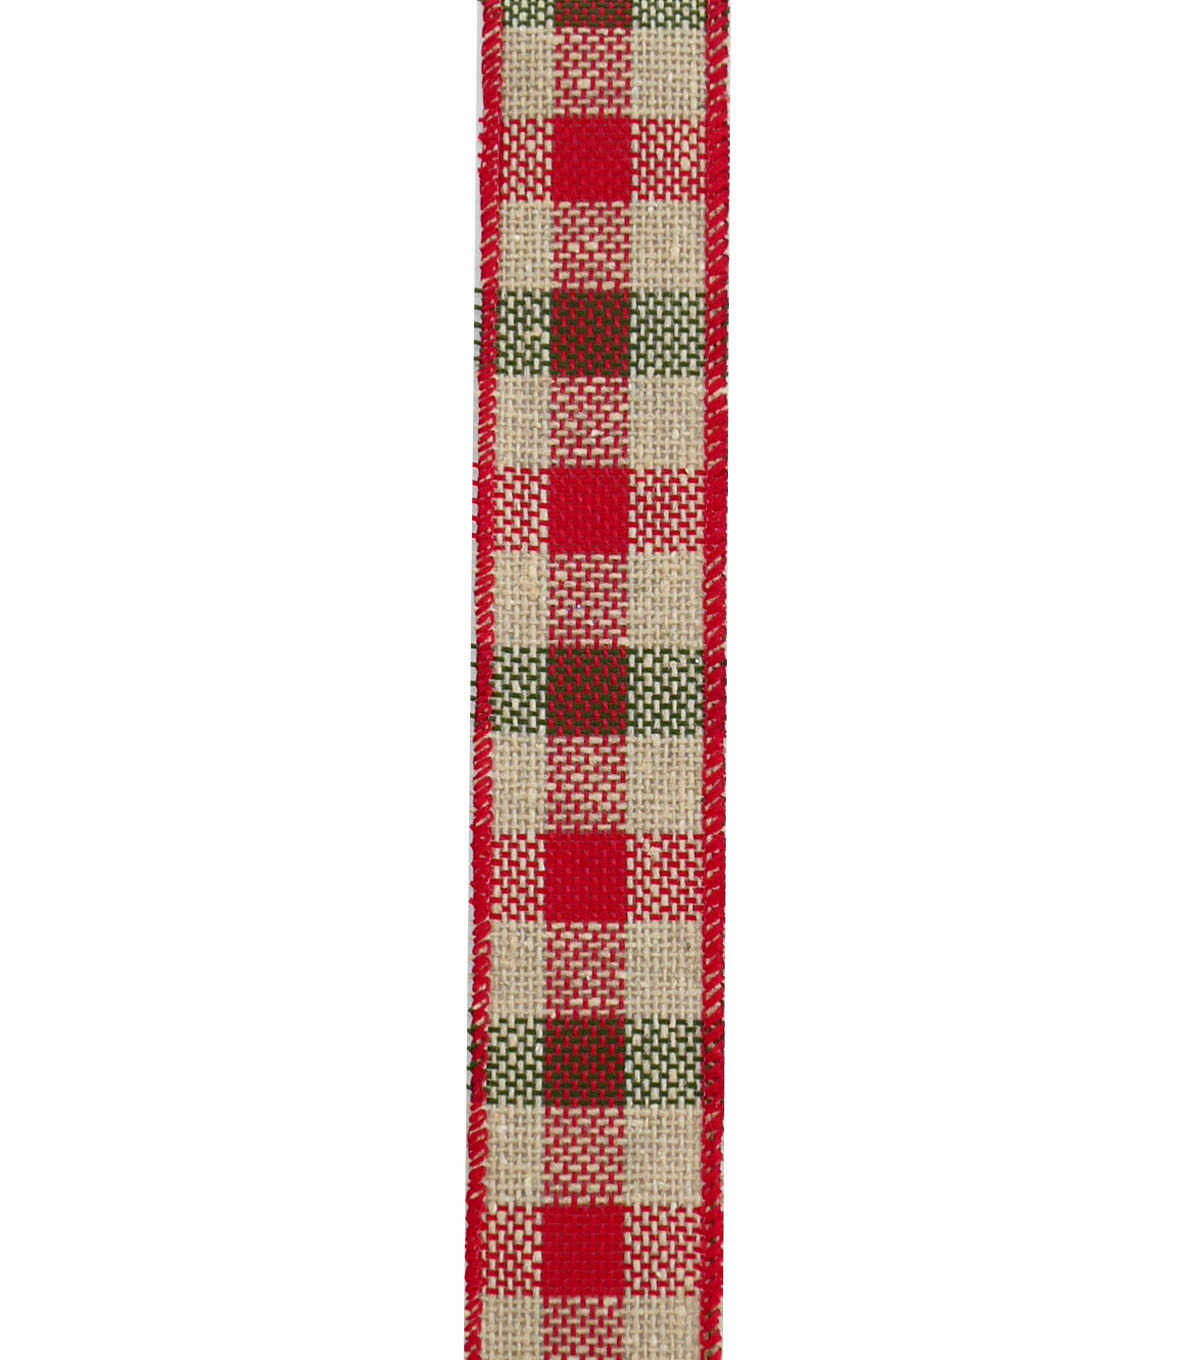 Maker\u0027s Holiday Ribbon 1.5\u0027\u0027x20\u0027-Red, Green & Natural Textured Plaid